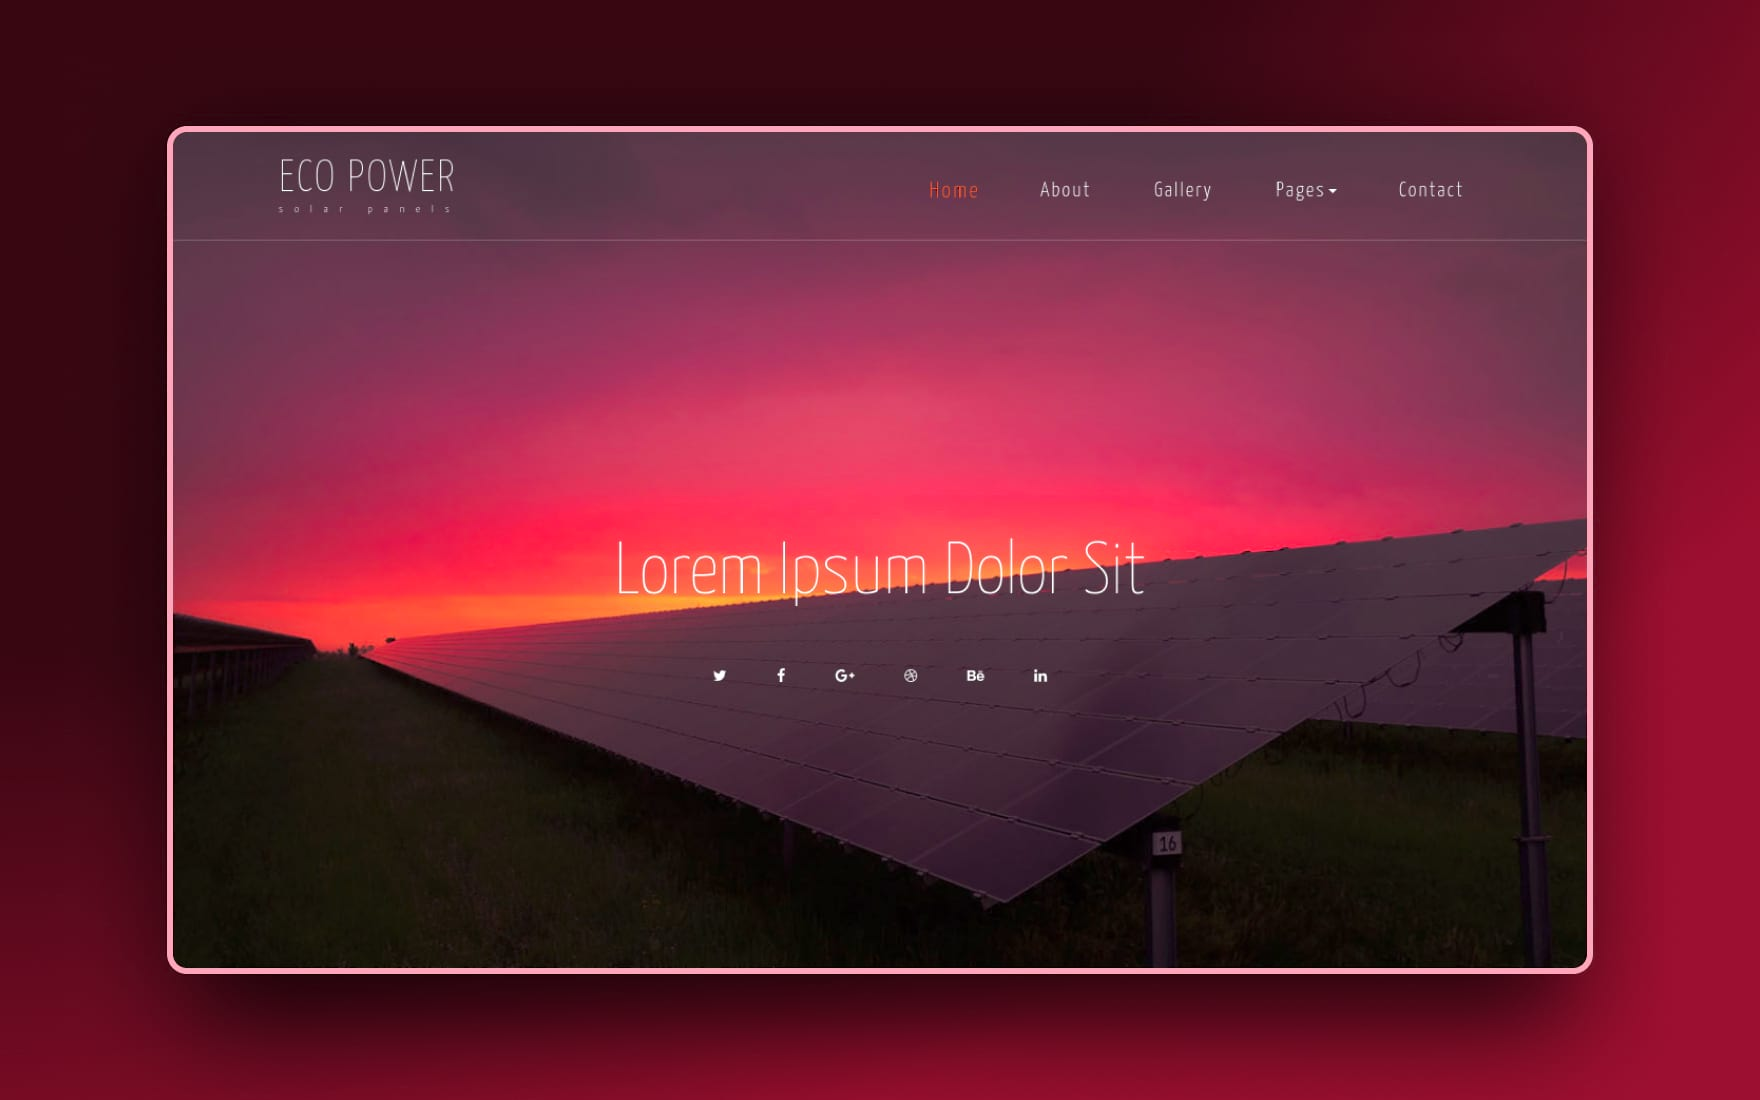 eco power website template